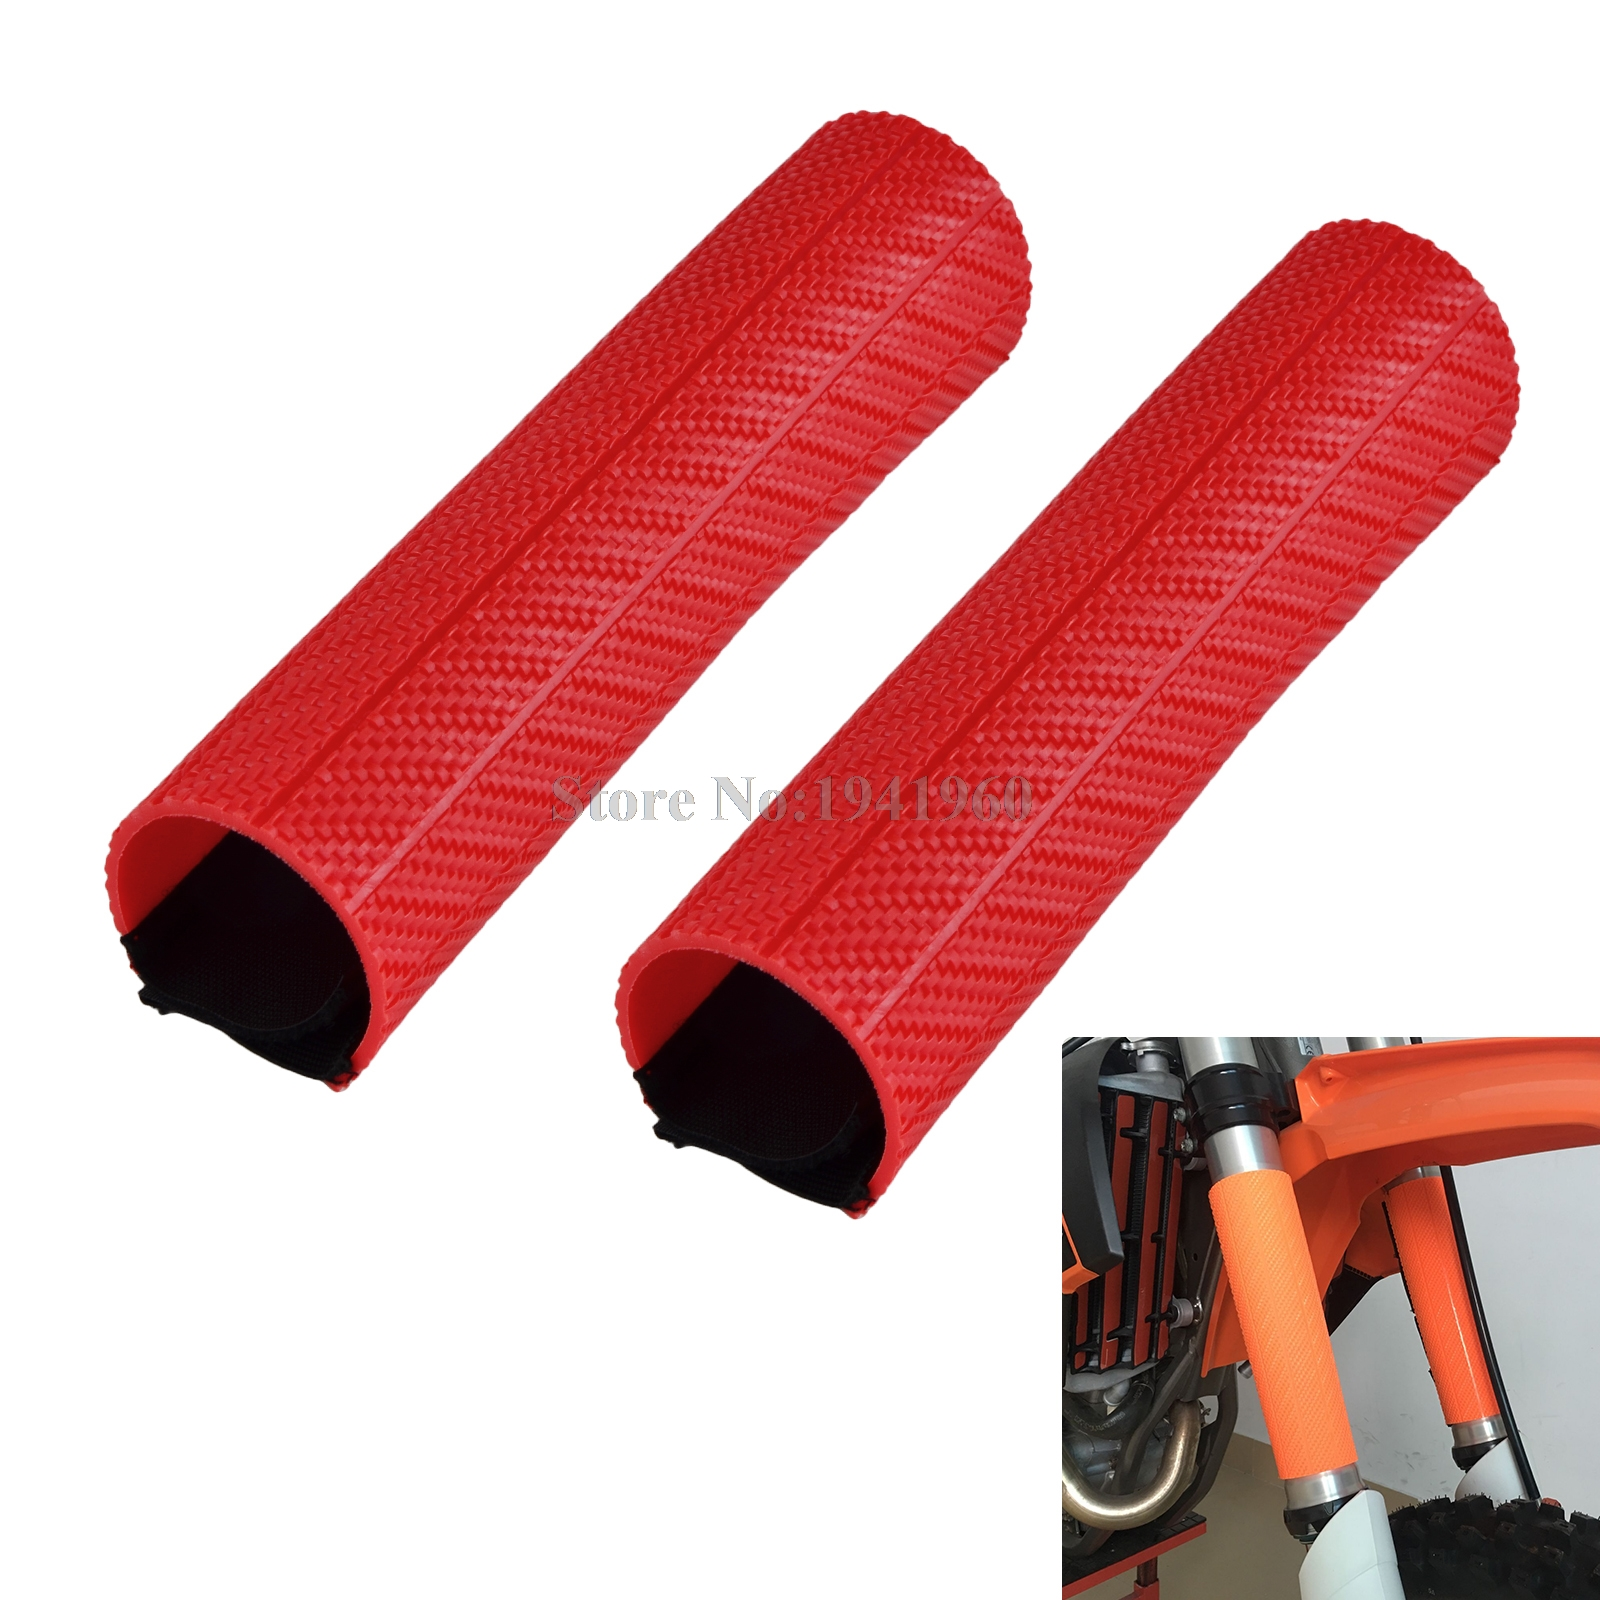 NICECNC Front Fork Guard Dust Protector Fork Shock Cover For Honda CRF250L CRF250M CRF150R CRF250R CRF450R CRF250X CRF450X 2017 for honda crf450x crf250x crf250l crf